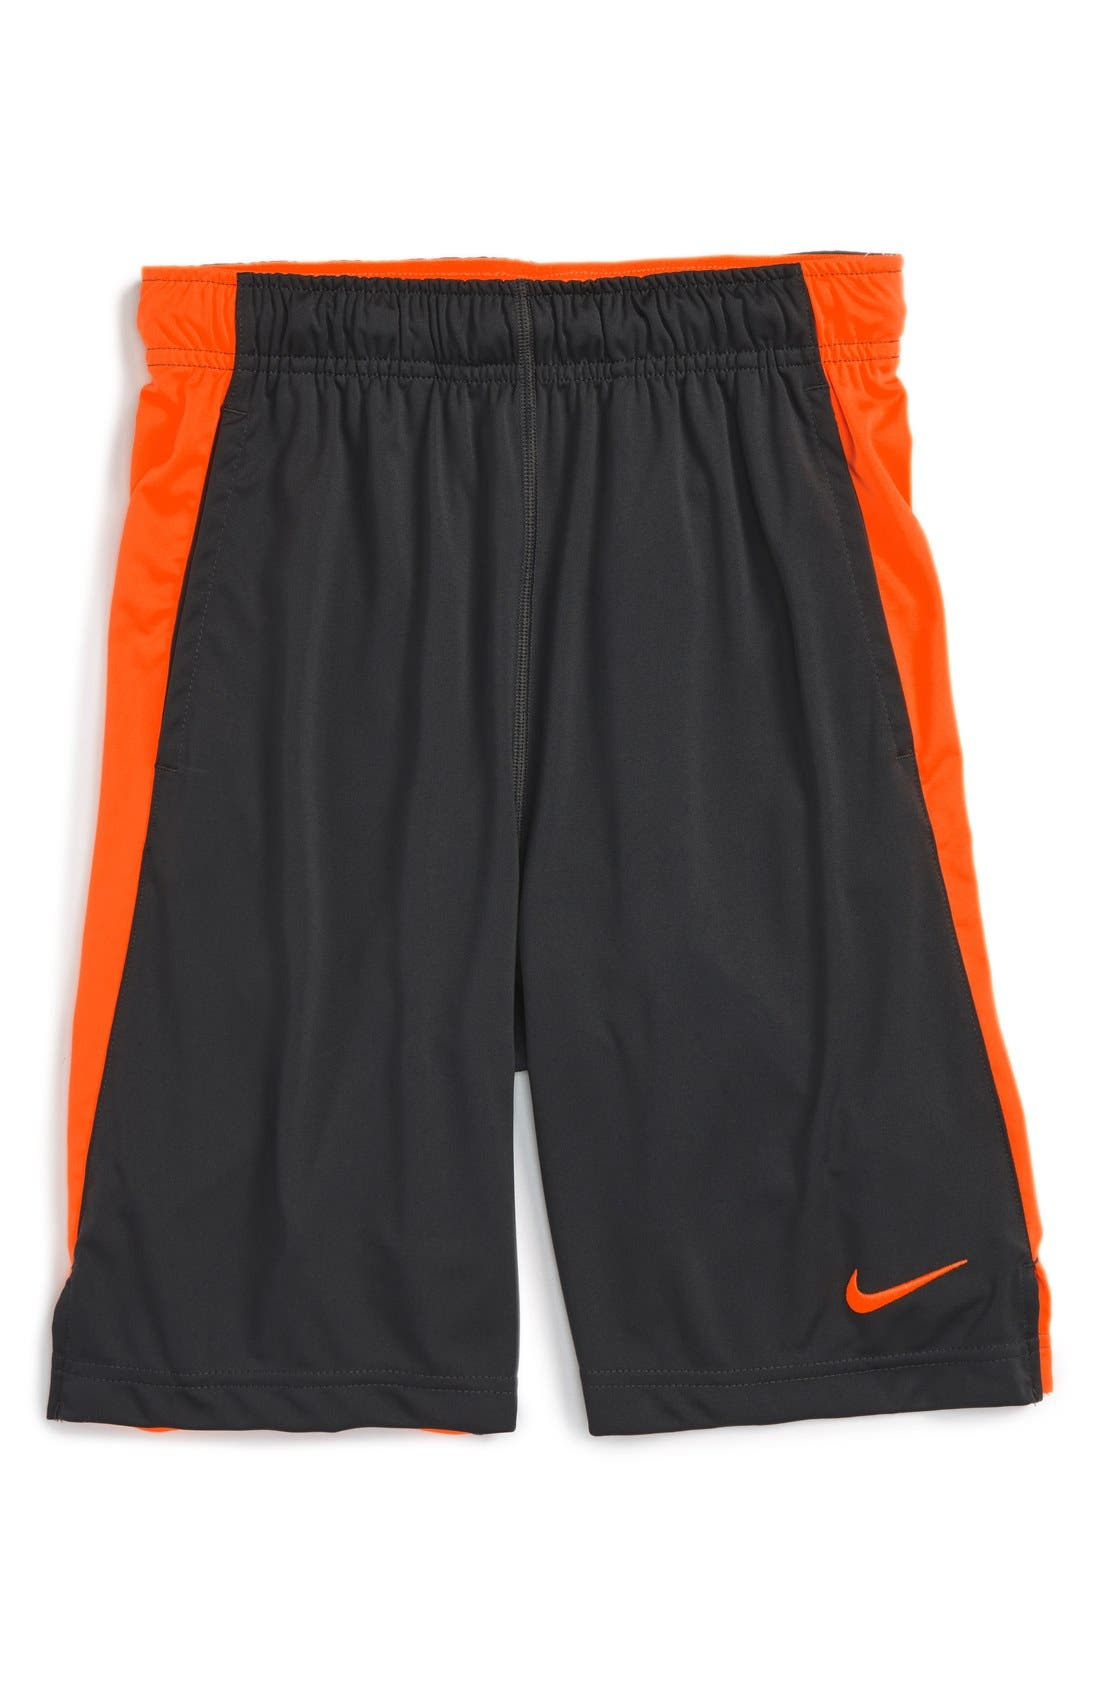 Alternate Image 1 Selected - Nike 'Fly' Dri-FIT Training Shorts (Little Boys & Big Boys)